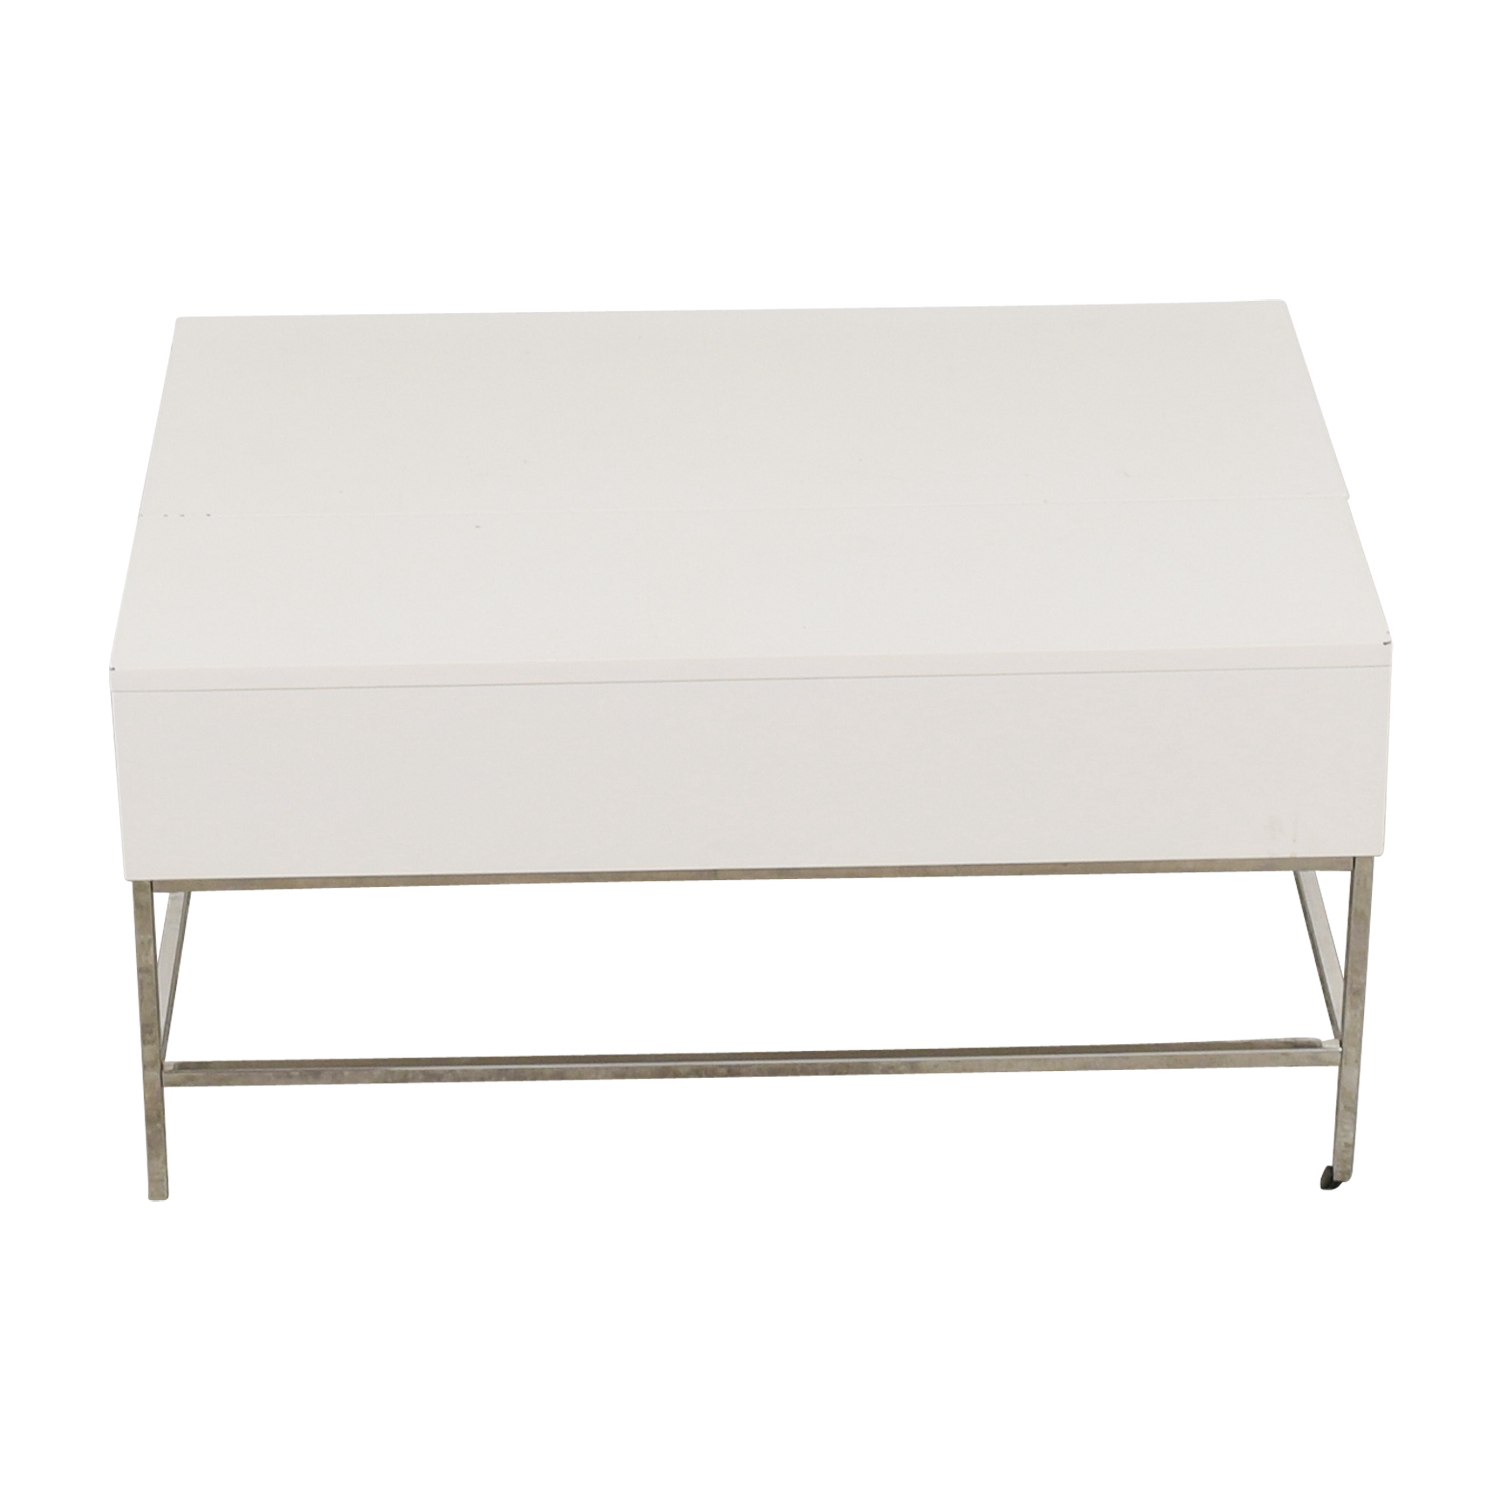 West Elm West Elm Lacquer Storage Coffee Table discount